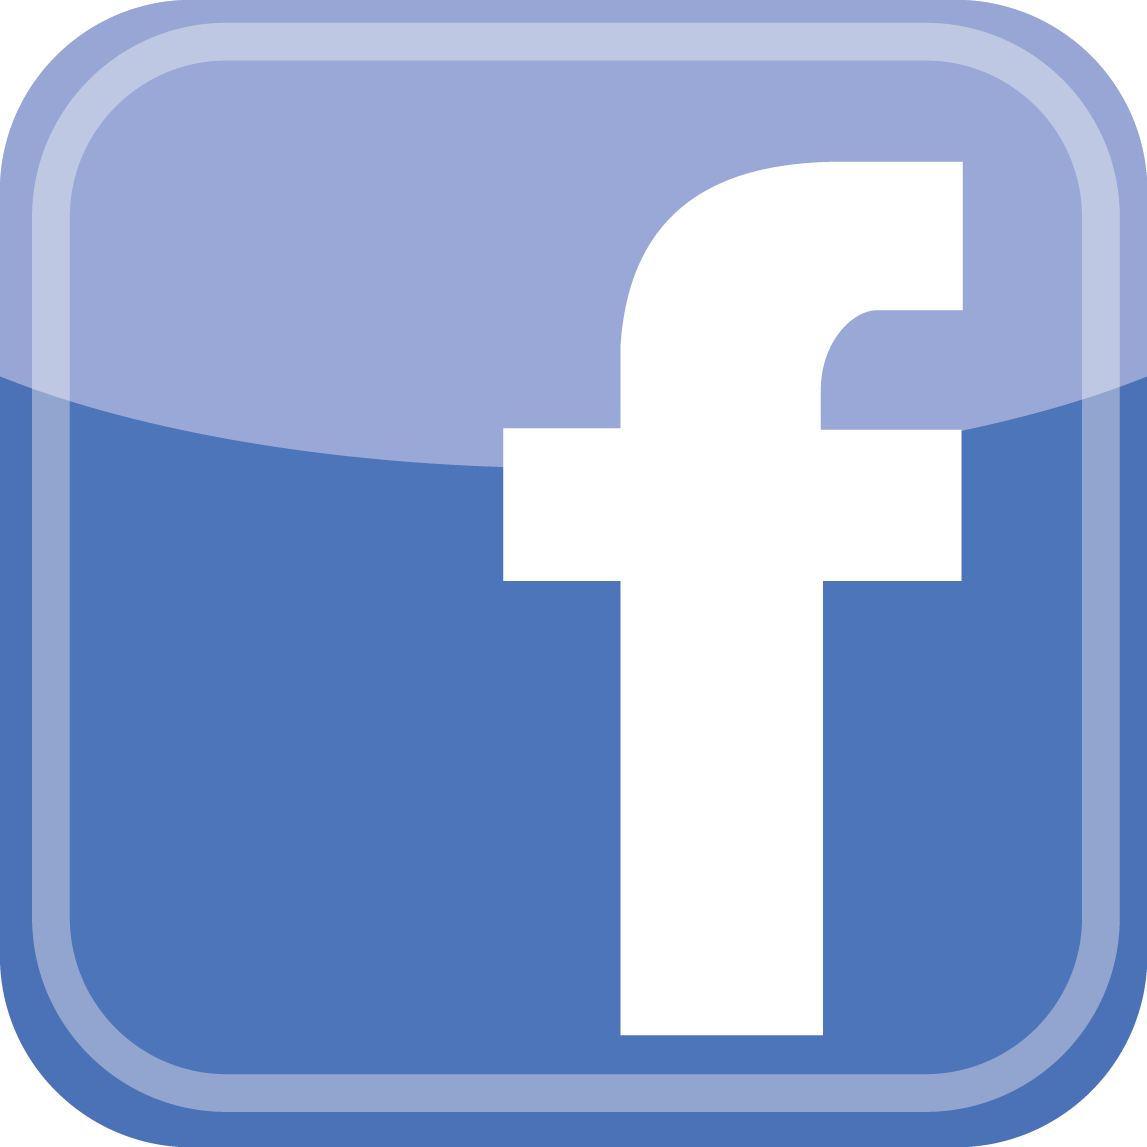 Image result for facebook logo png transparent background